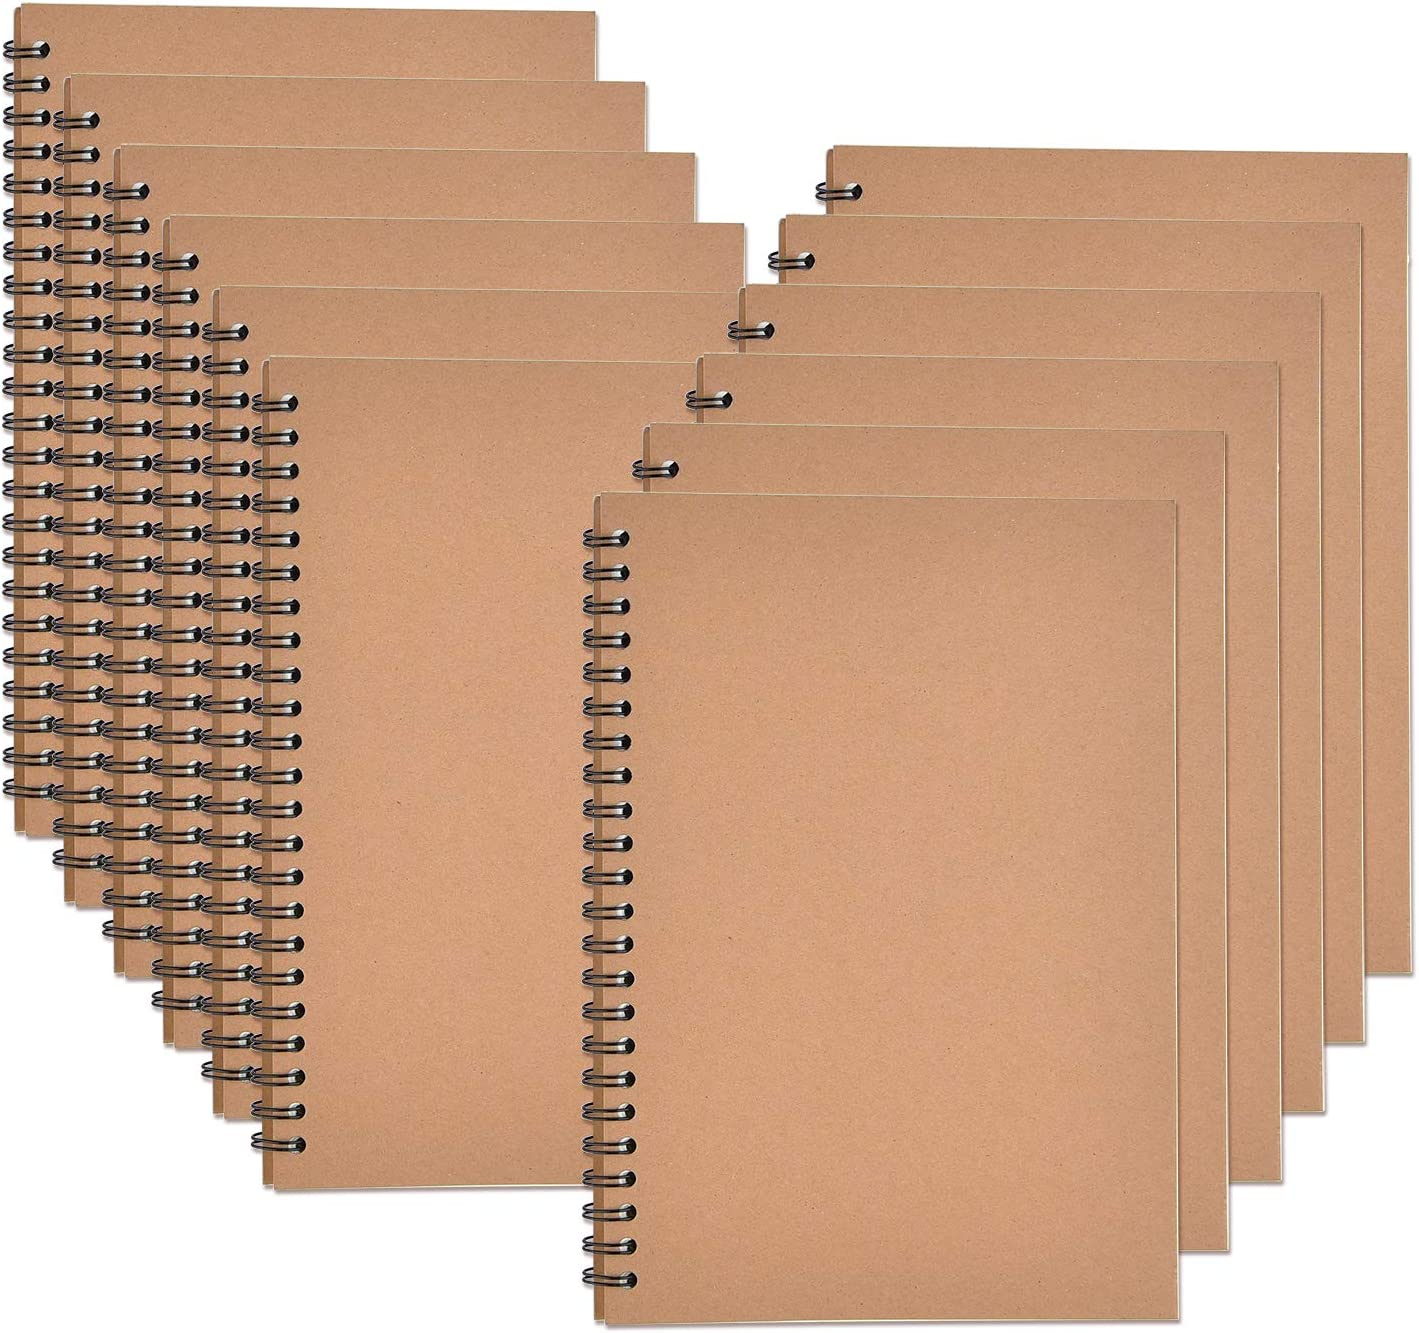 Zealor 12 Pack Soft Cover Notebooks with Lined Paper 8.3 inch x 5.5 inch, Spiral Notebooks -120 Pages, 60 Sheets - Memo Notepads for Home School Travel (Kraft Cover)